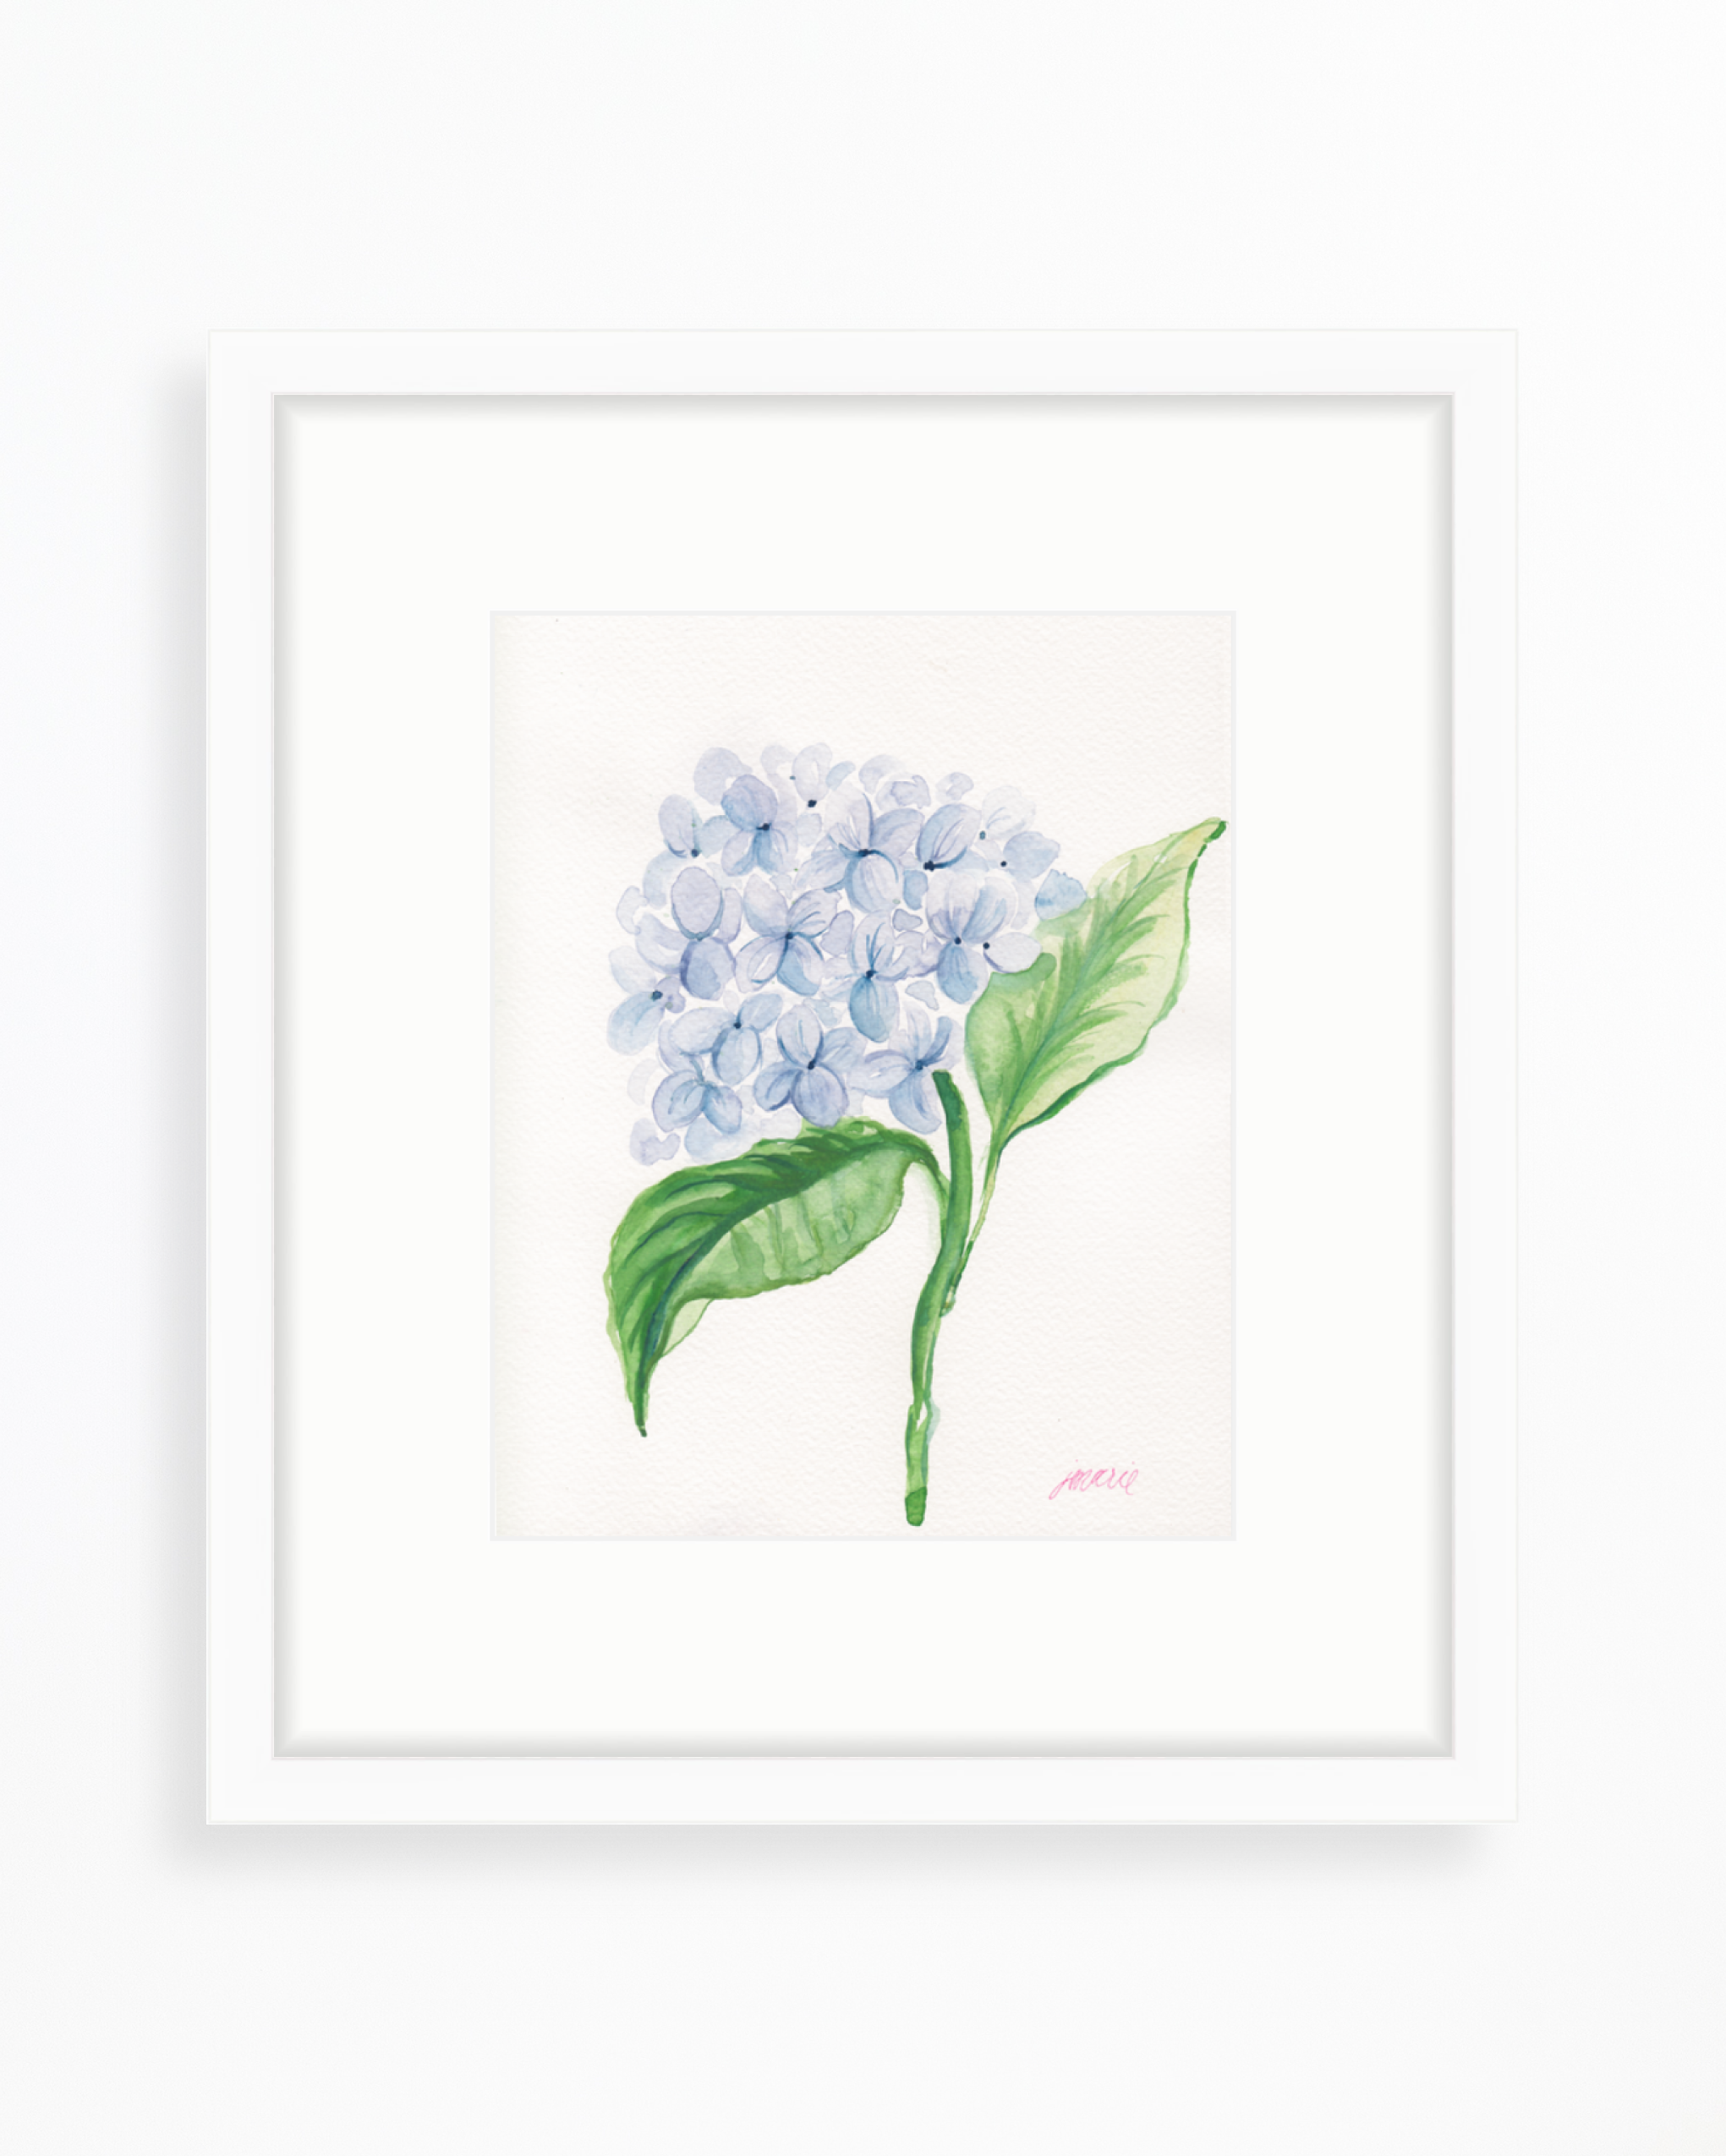 Blue-Hydrangea-Watercolor-Painting-by-Simply-Jessica-Marie-_-White-Frame.png